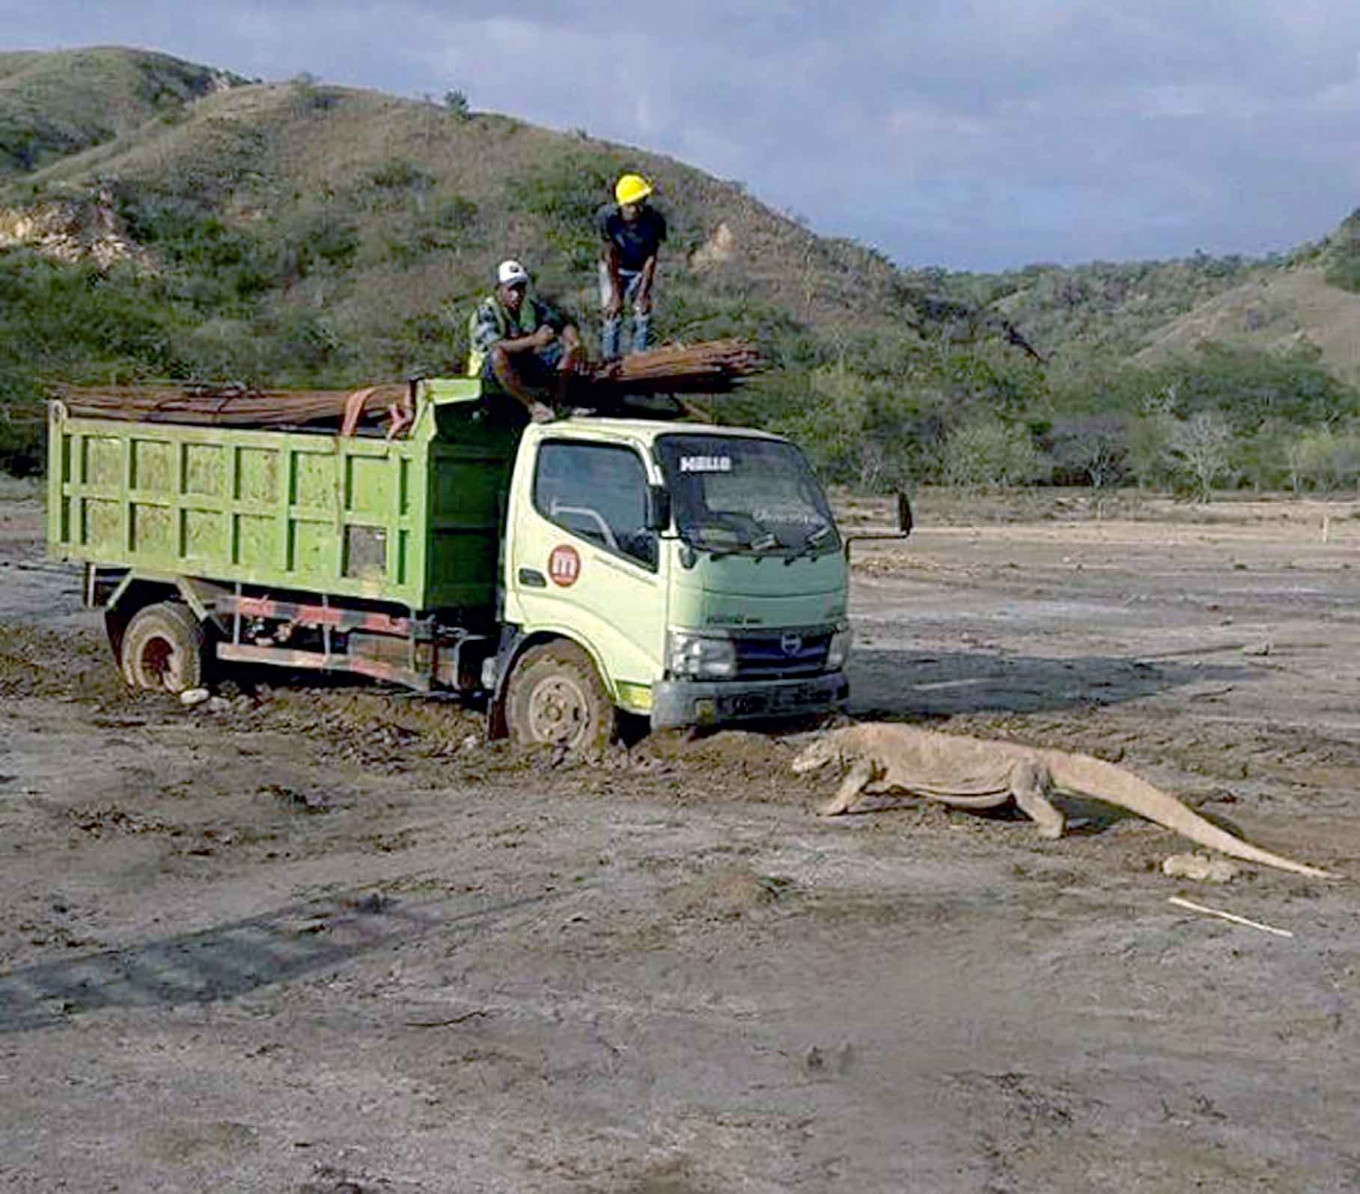 Komodo dragon's 'Tiananmen moment' sparks concern over prime tourism project